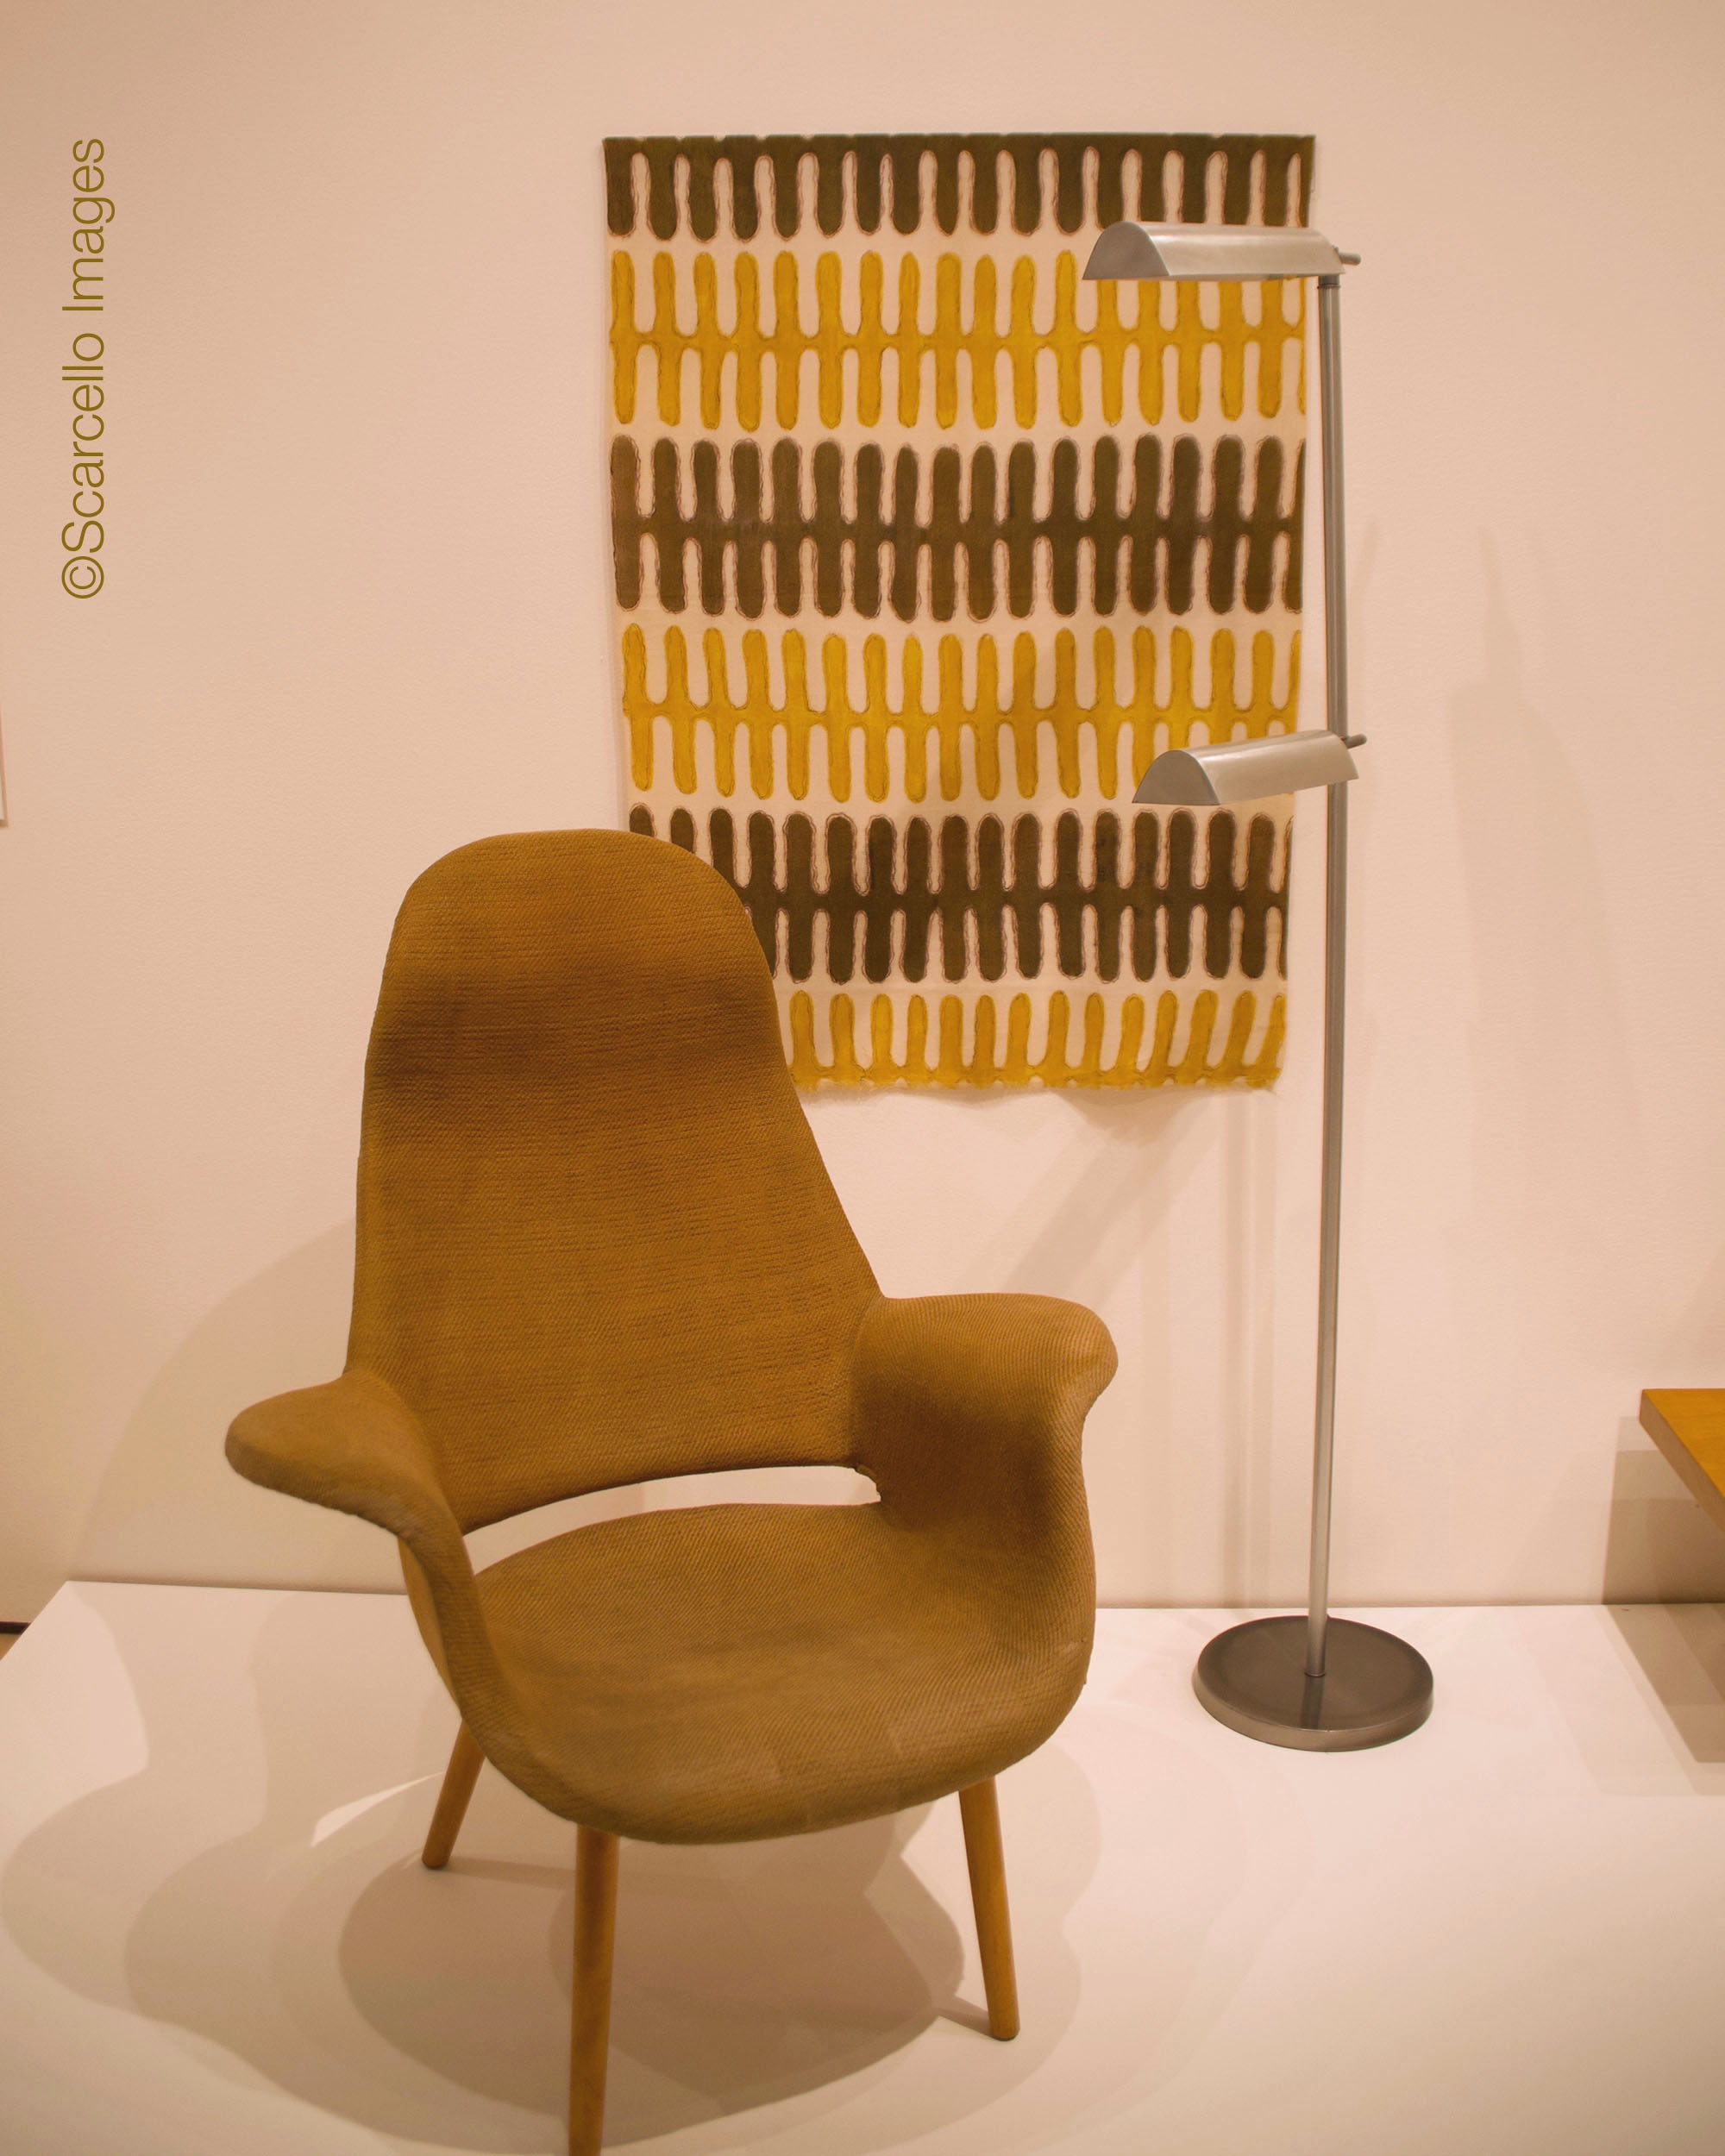 Arm chair by Eero Saarinen and Charles Eames. Hanging fabric by Virginia Nepodal. Lamp by Peter Pfisterer. All 1940.